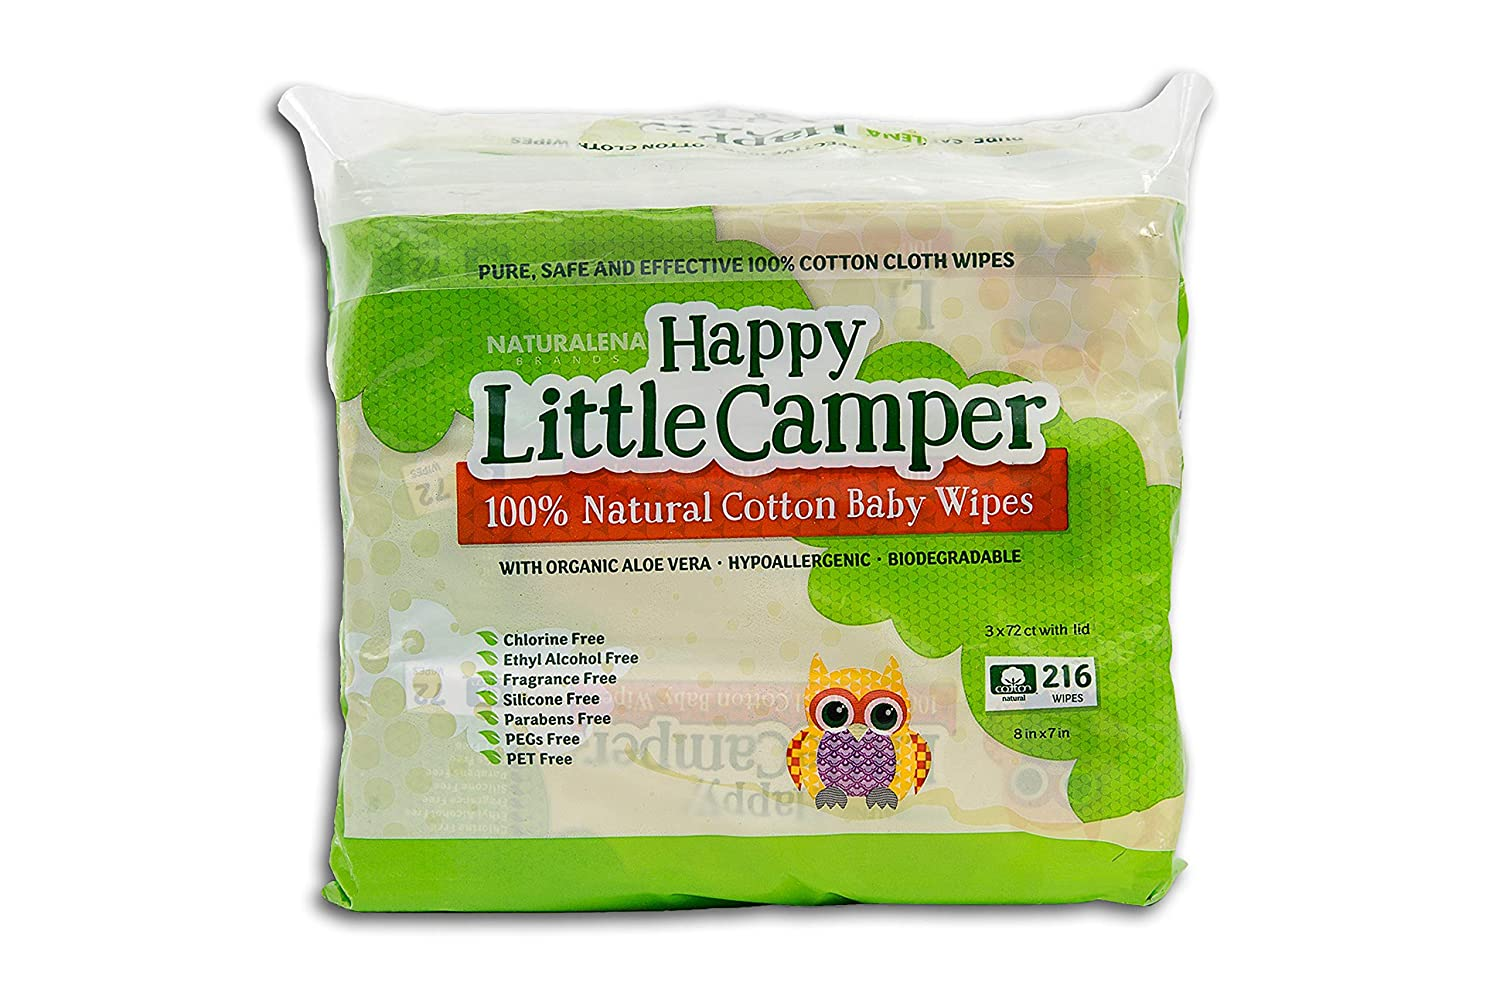 Happy Little Camper Baby Wipes, Natural All-Cotton with Organic Aloe, for Sensitive Skin, 216 Count Naturalena Brands